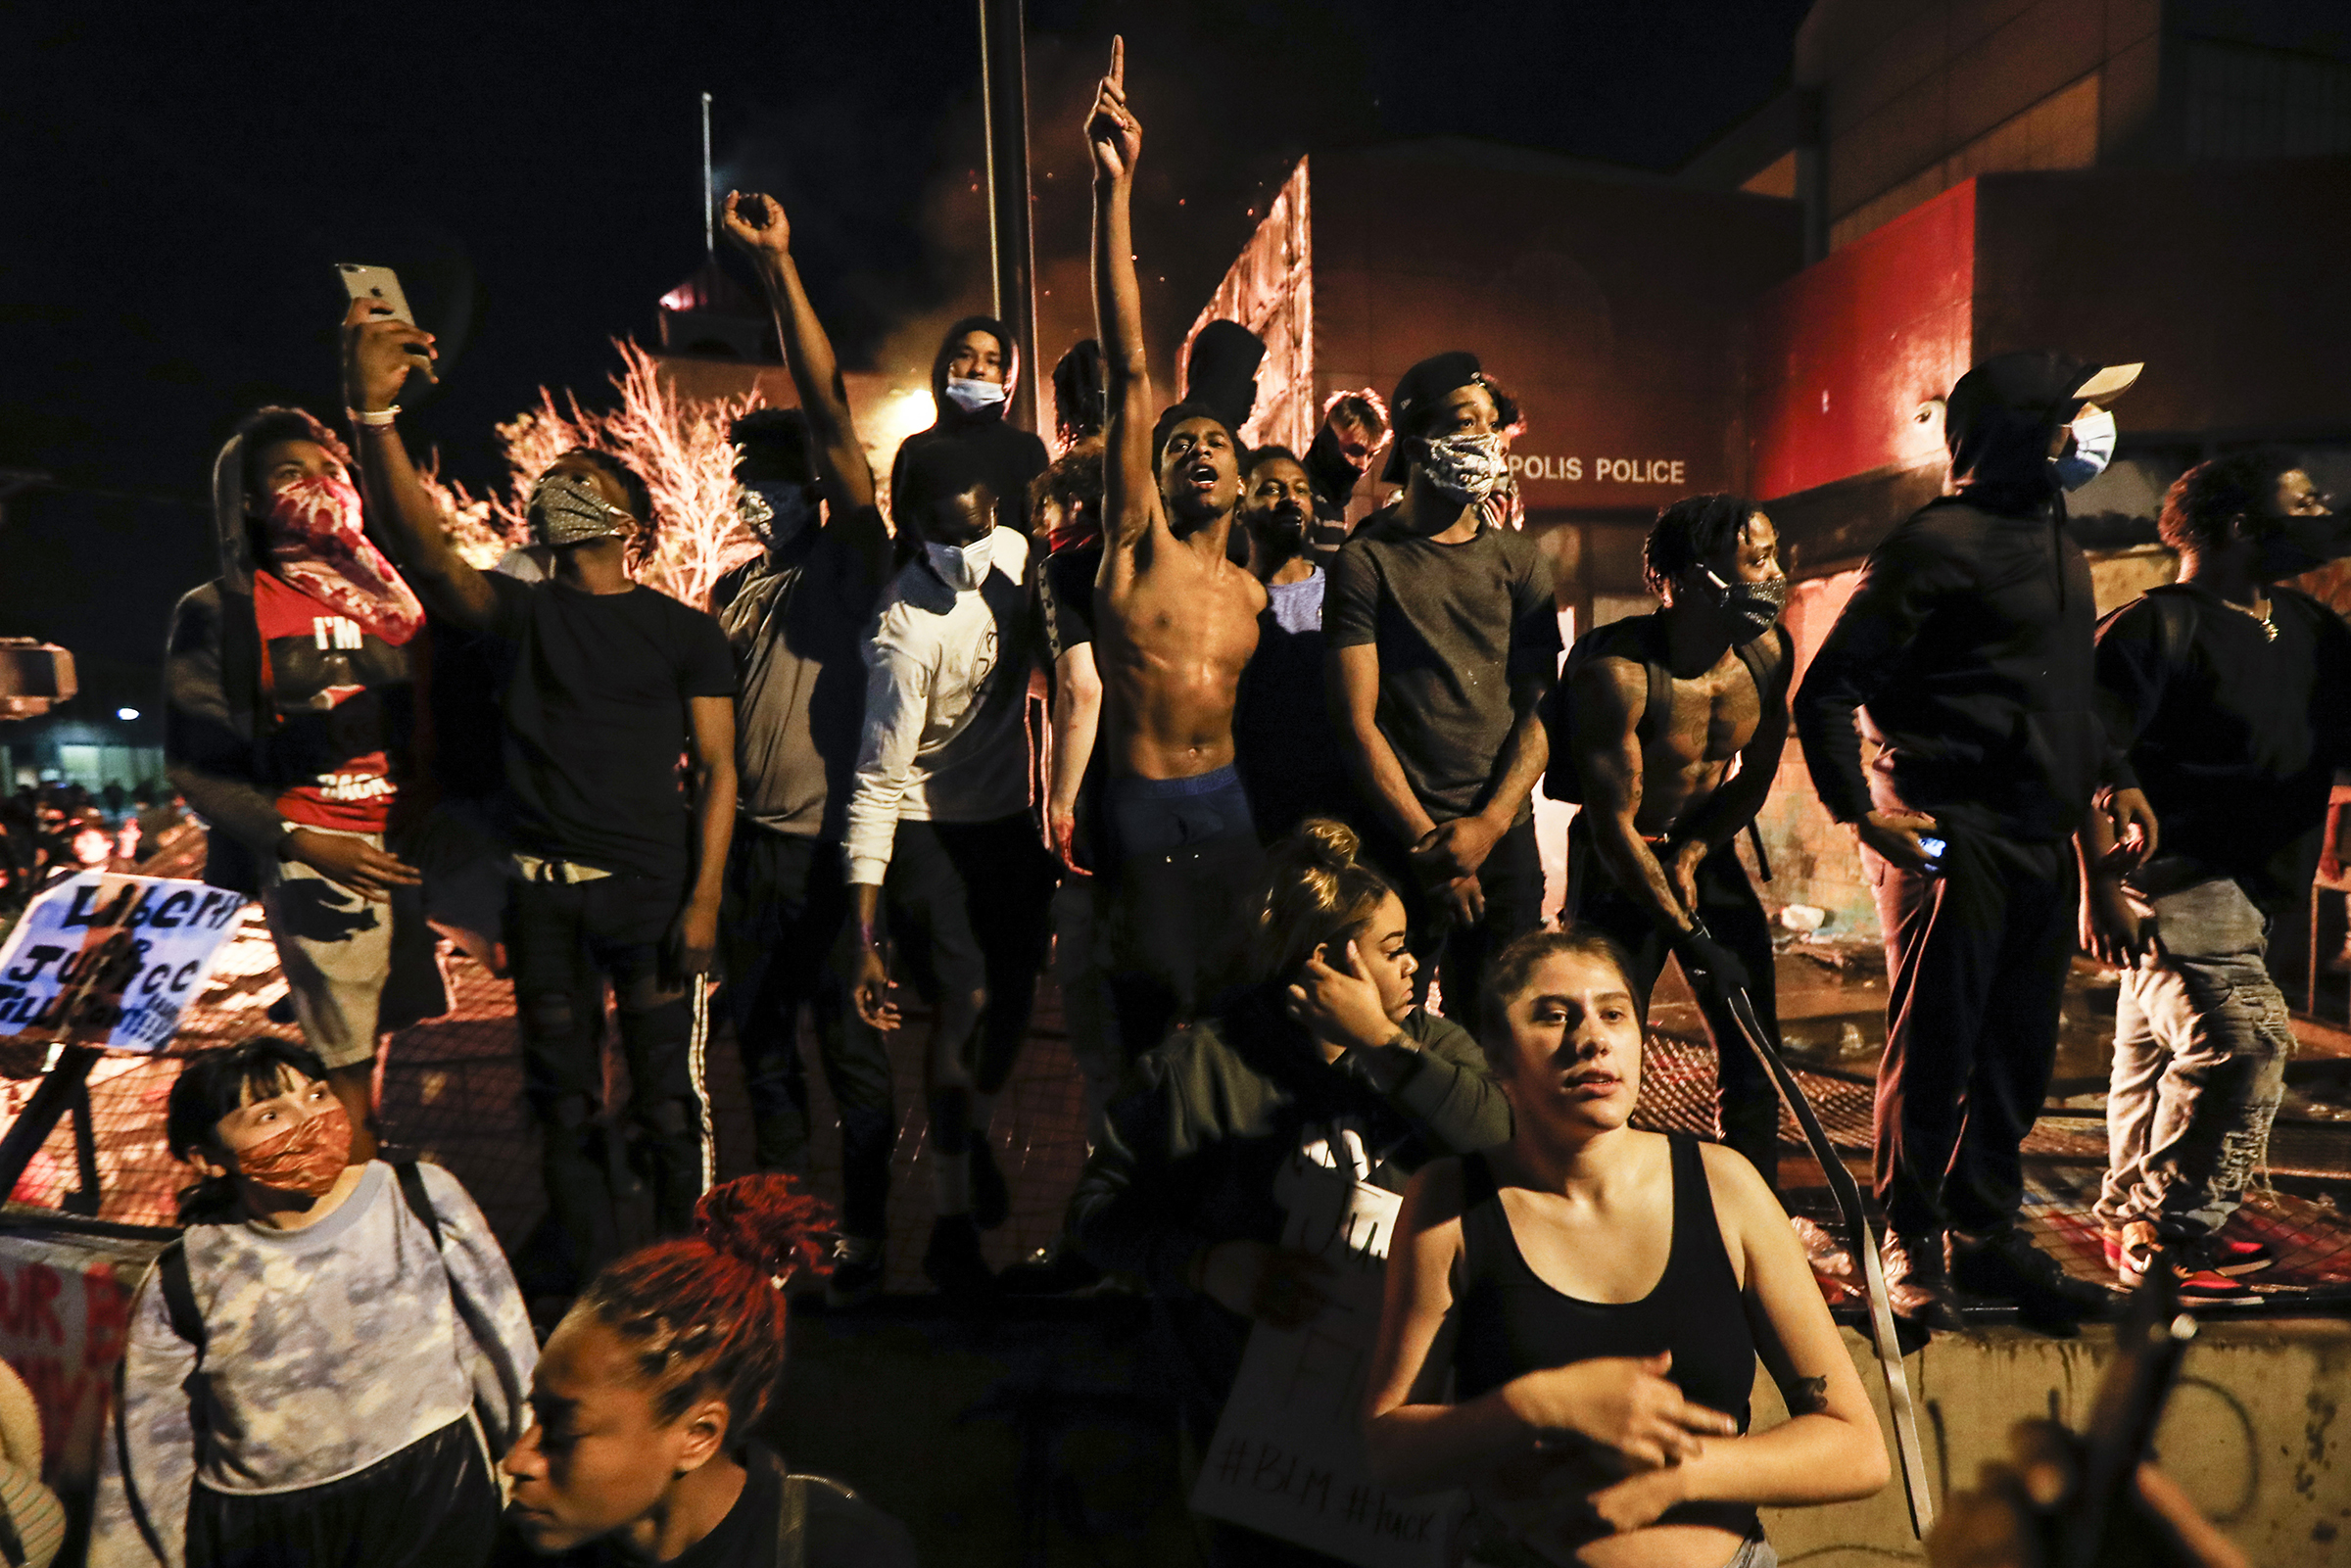 Protesters demonstrate outside of the burning precinct on May 28.